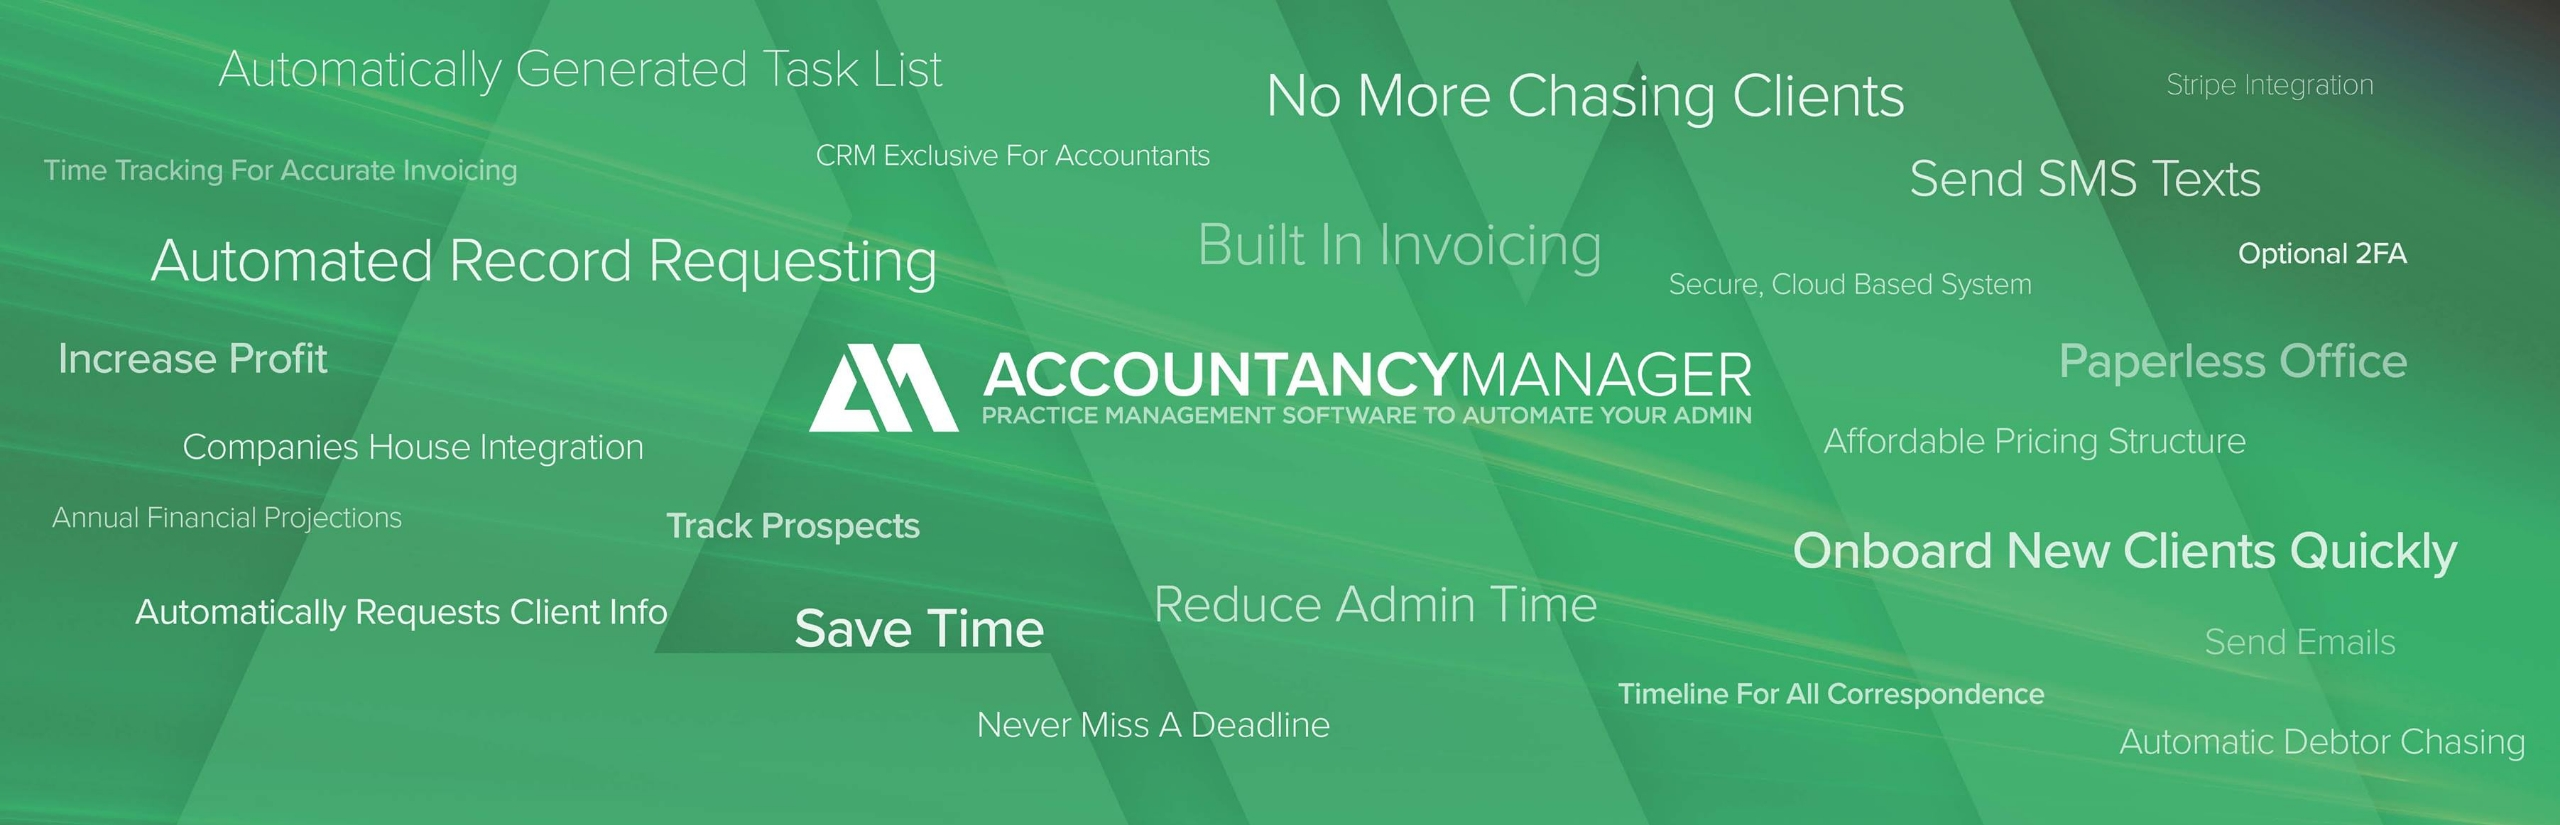 AccountancyManager (@accountancymanager) Cover Image